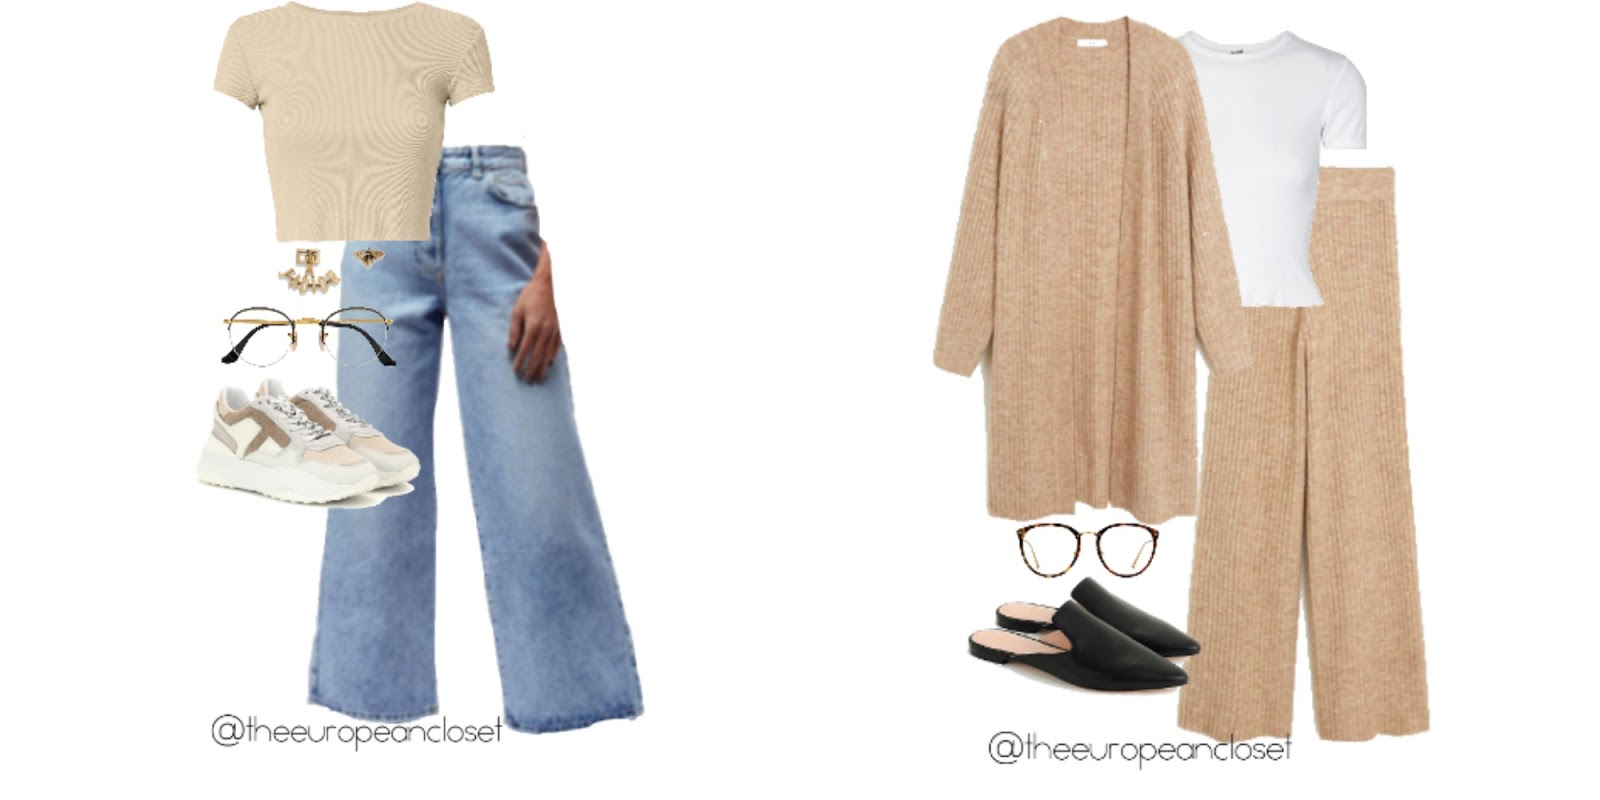 As it seems like we will all be working from home for the next few months, I thought I'd compile a few more outfit ideas you can wear while working from home so you can look stylish yet comfortable at the same time.